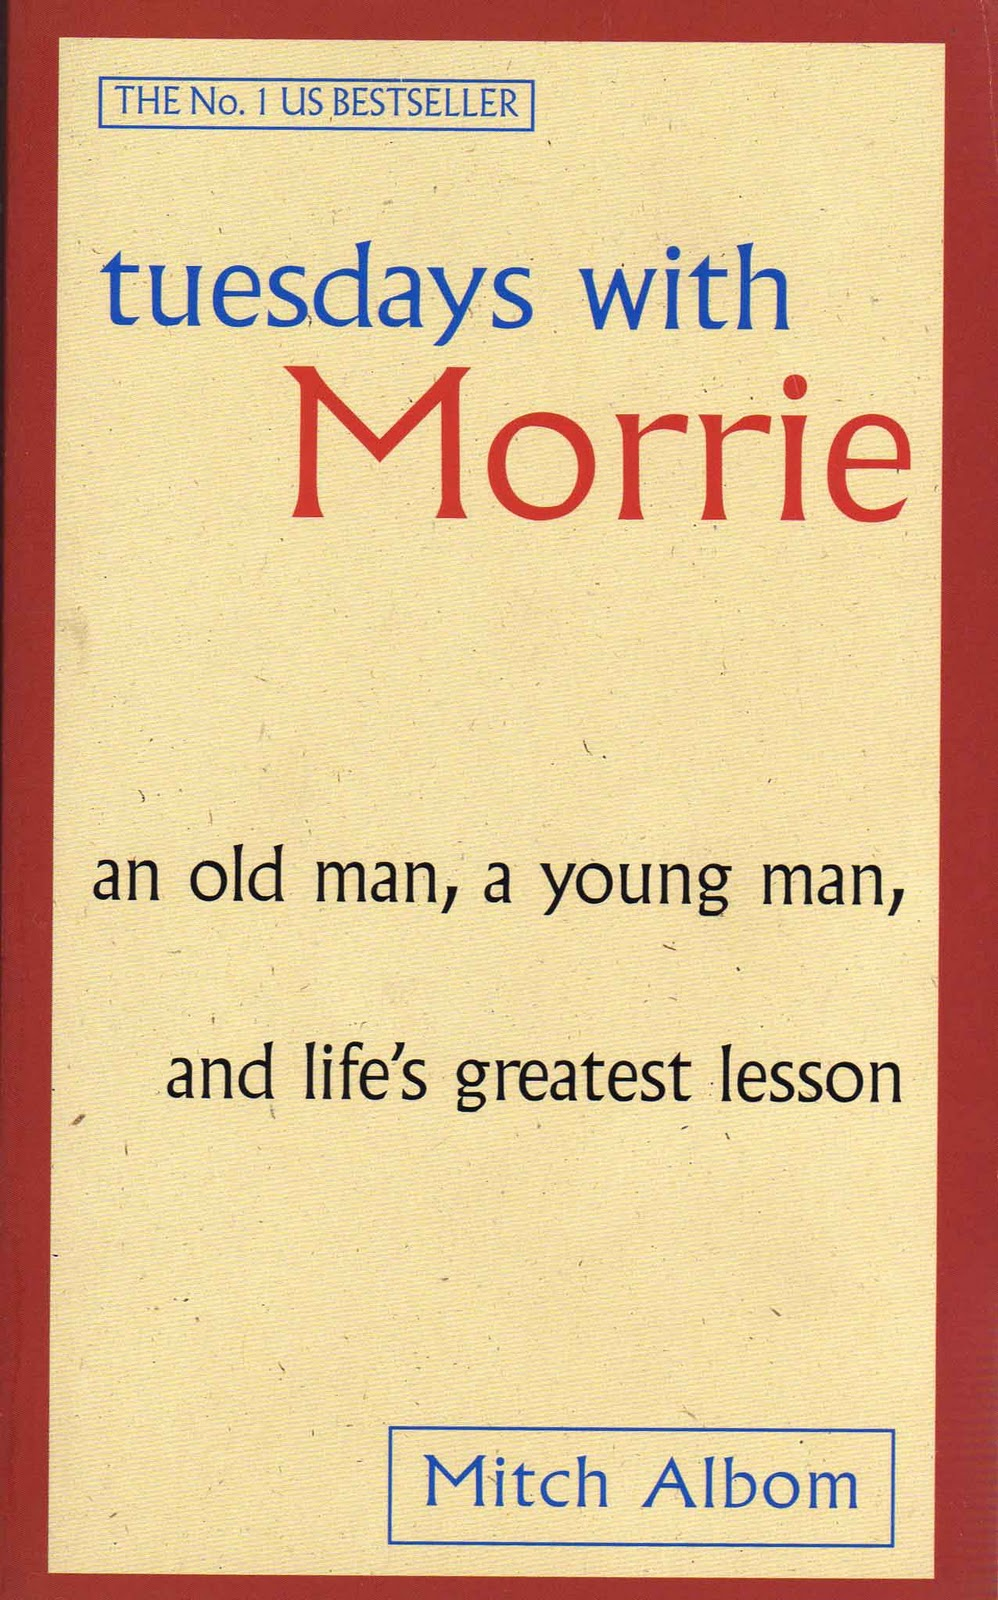 Tuesdays with morrie essay